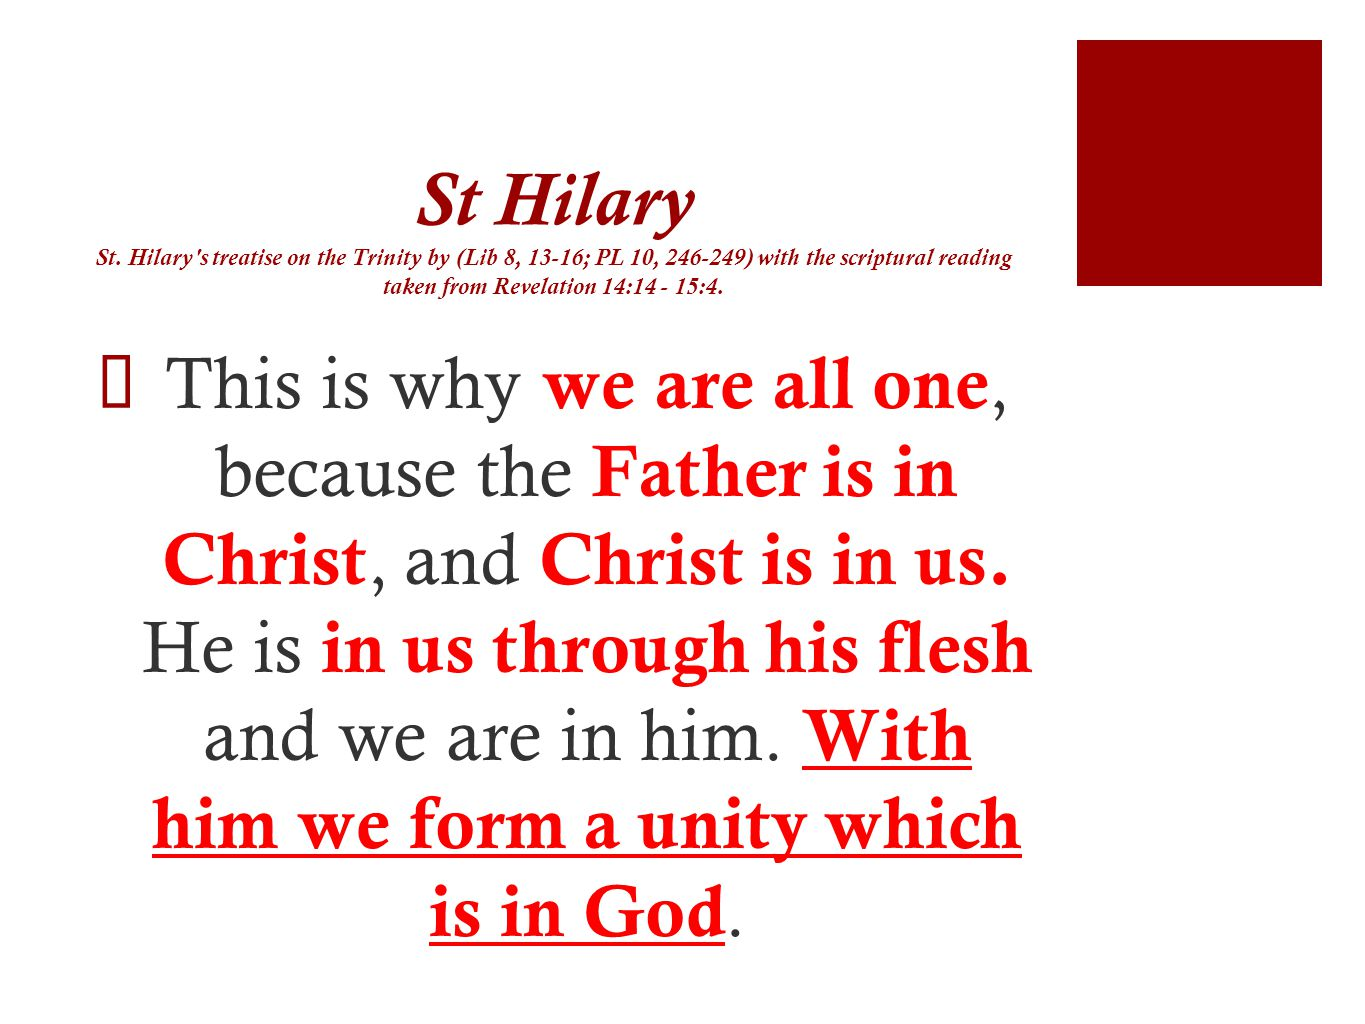 St Hilary St. Hilary's treatise on the Trinity by (Lib 8, 13-16; PL 10, 246-249) with the scriptural reading taken from Revelation 14:14 - 15:4. This